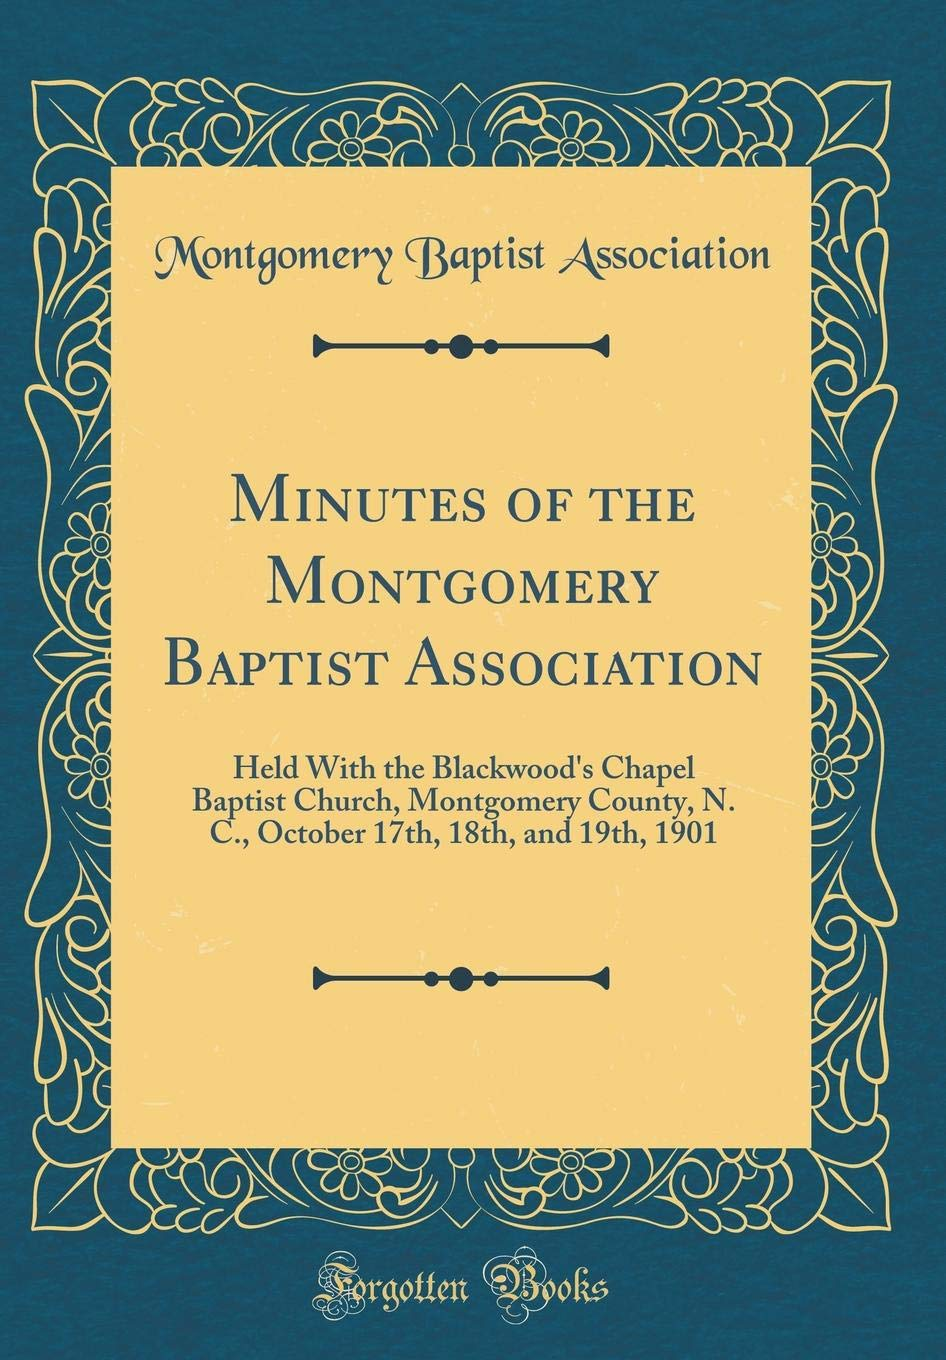 Download Minutes of the Montgomery Baptist Association: Held With the Blackwood's Chapel Baptist Church, Montgomery County, N. C., October 17th, 18th, and 19th, 1901 (Classic Reprint) ebook